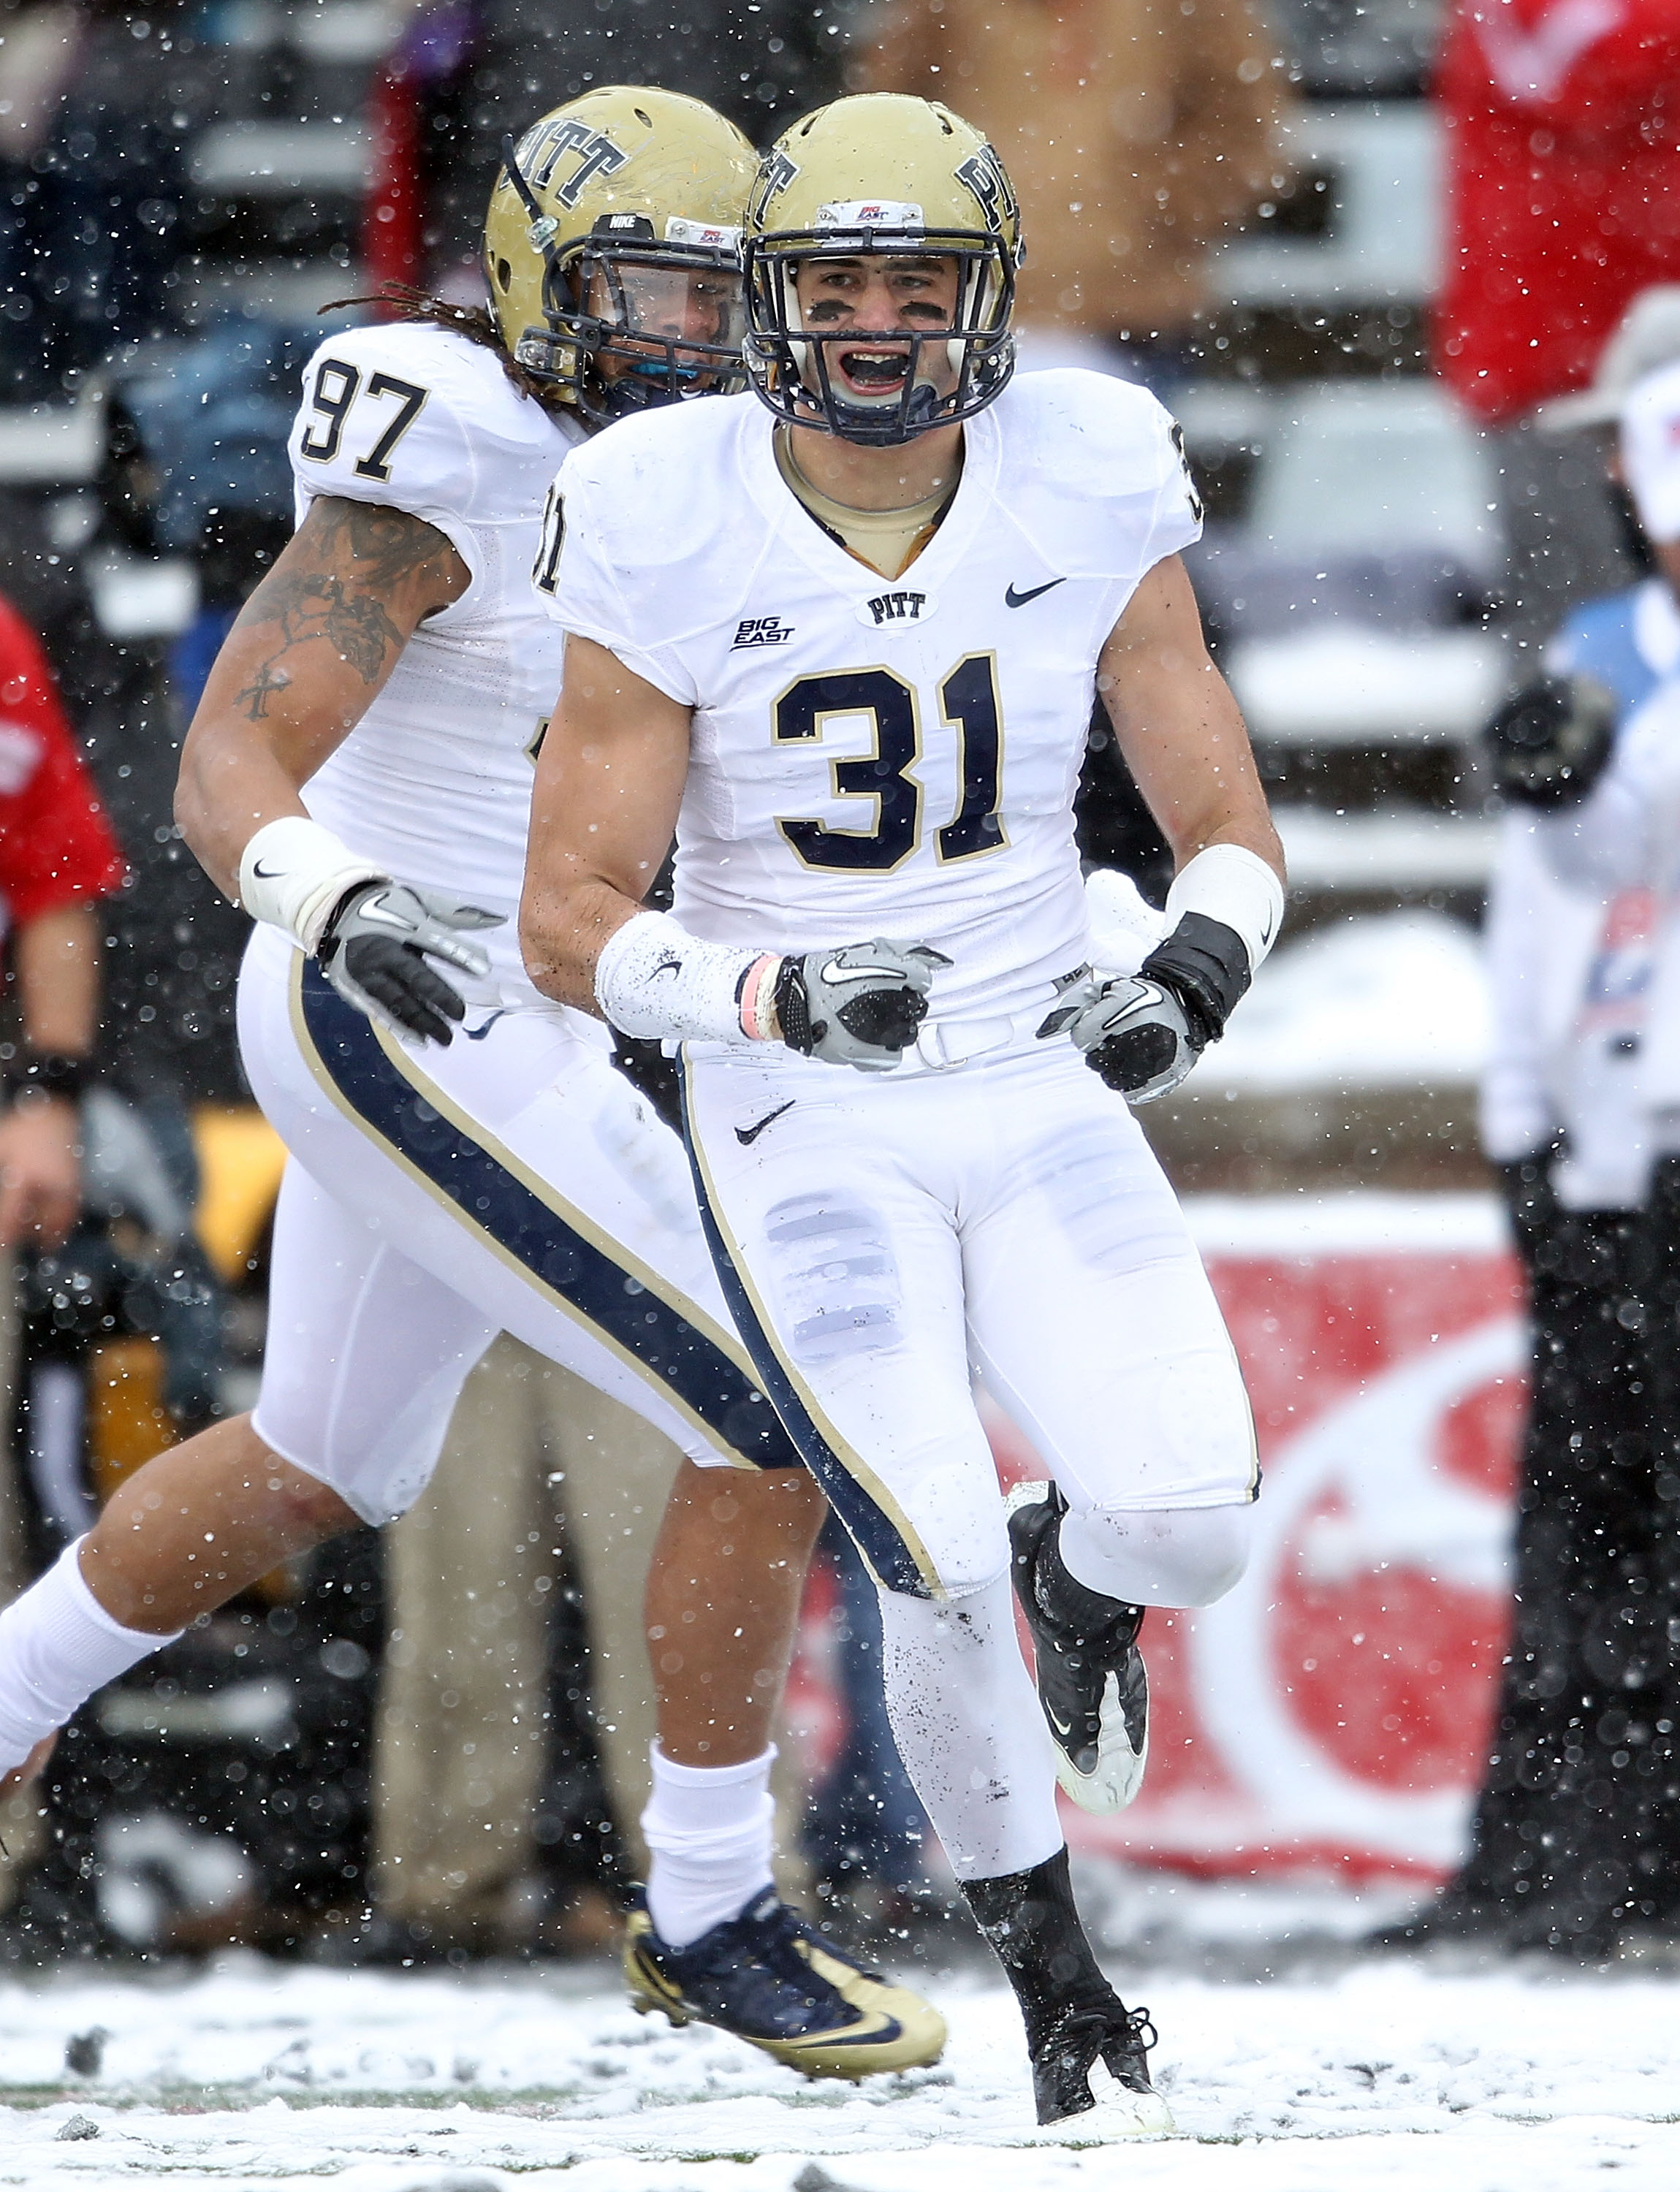 CINCINNATI, OH - DECEMBER 04:  Dom Decicco #31 of the Pittsburgh Panthers celebrates after intercepting a pass during the Big East Conference game against the Cincinnati Bearcats at Nippert Stadium on December 4, 2010 in Cincinnati, Ohio.  Pittsburgh won